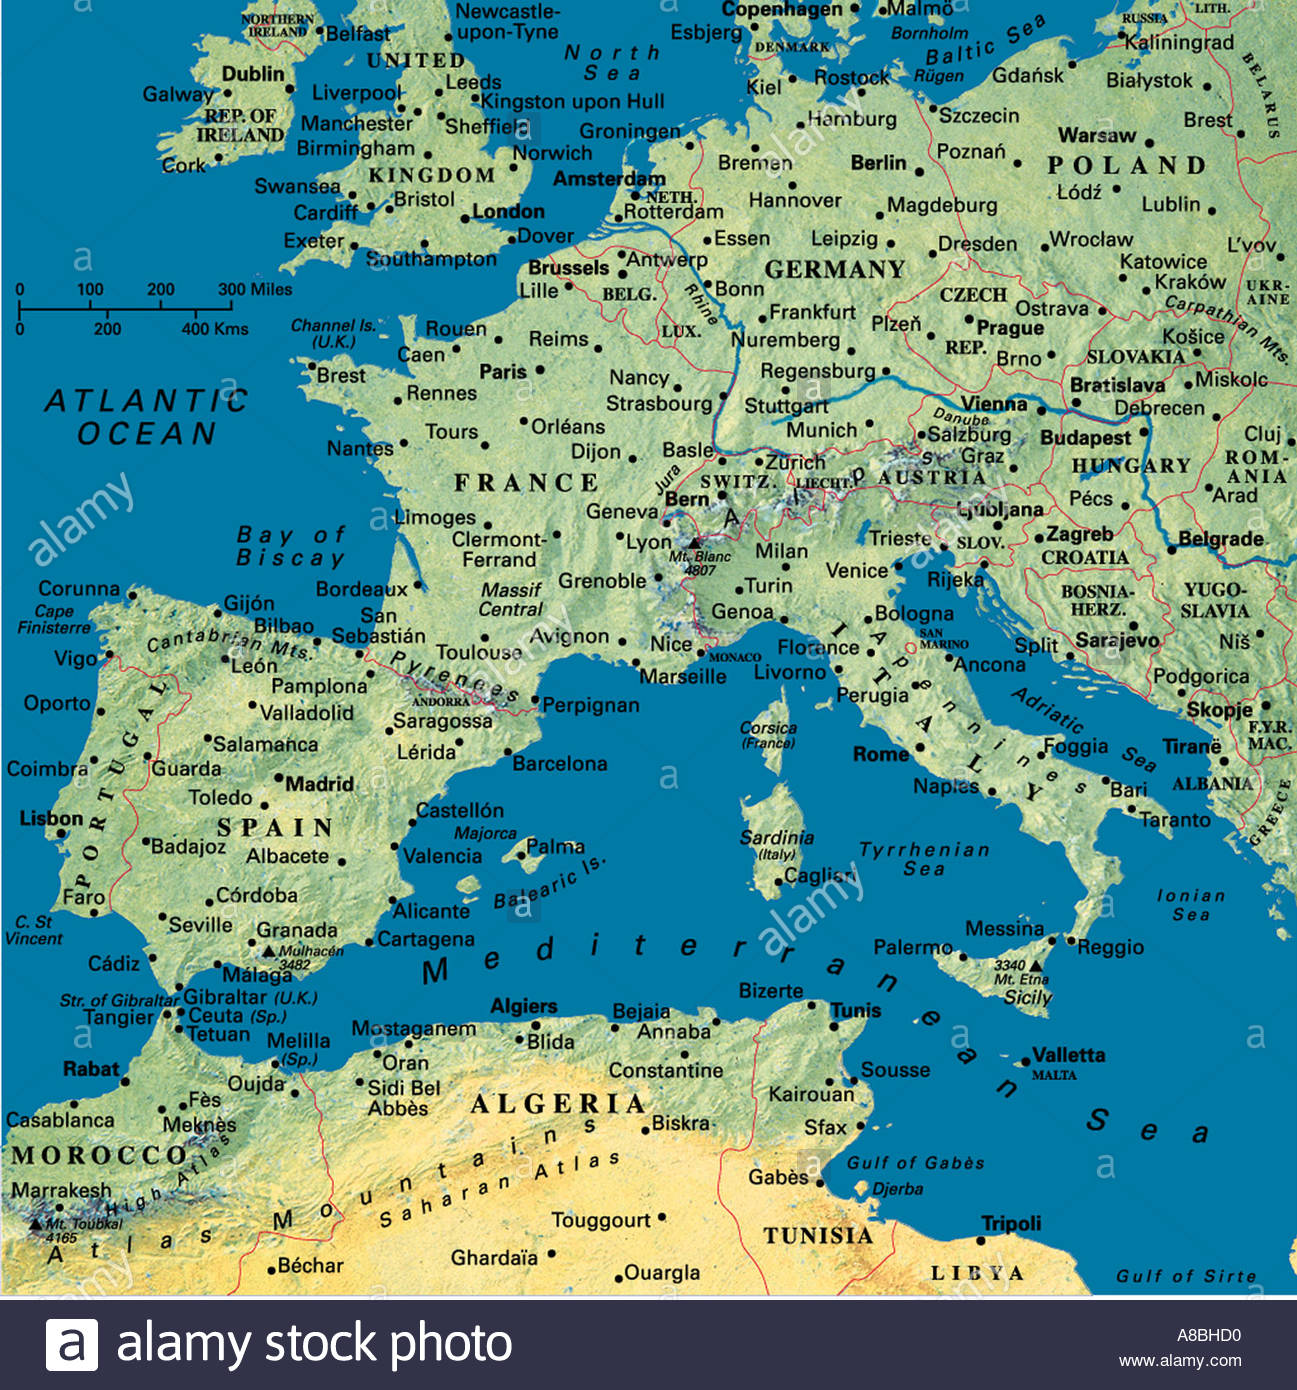 map maps Europe Algeria Tunesia North Africa Spain Portugal France ...